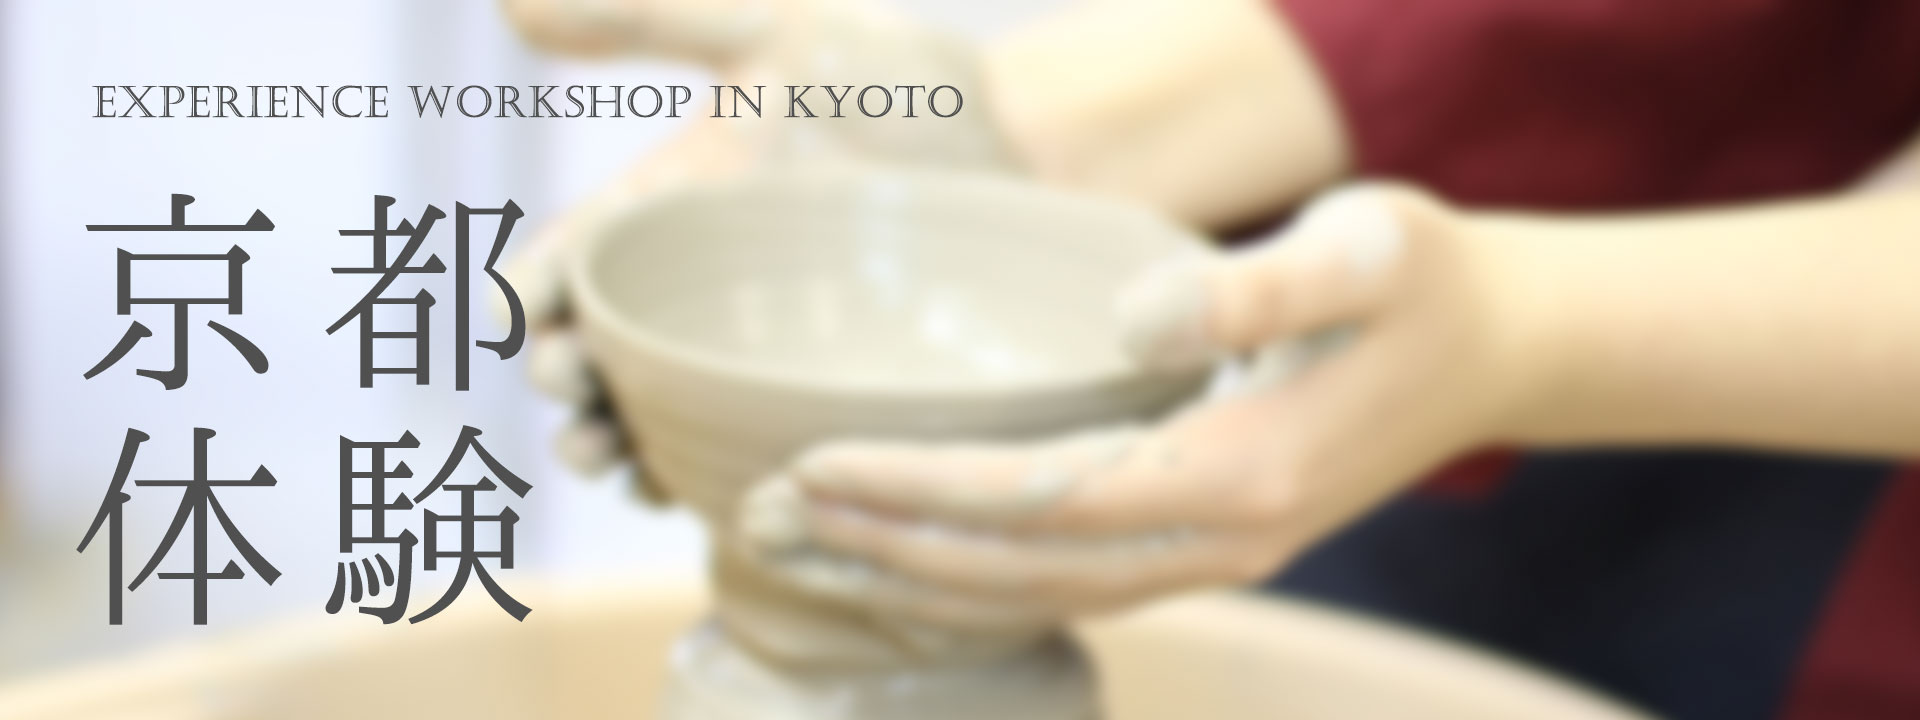 Experience Workshop in Kyoto